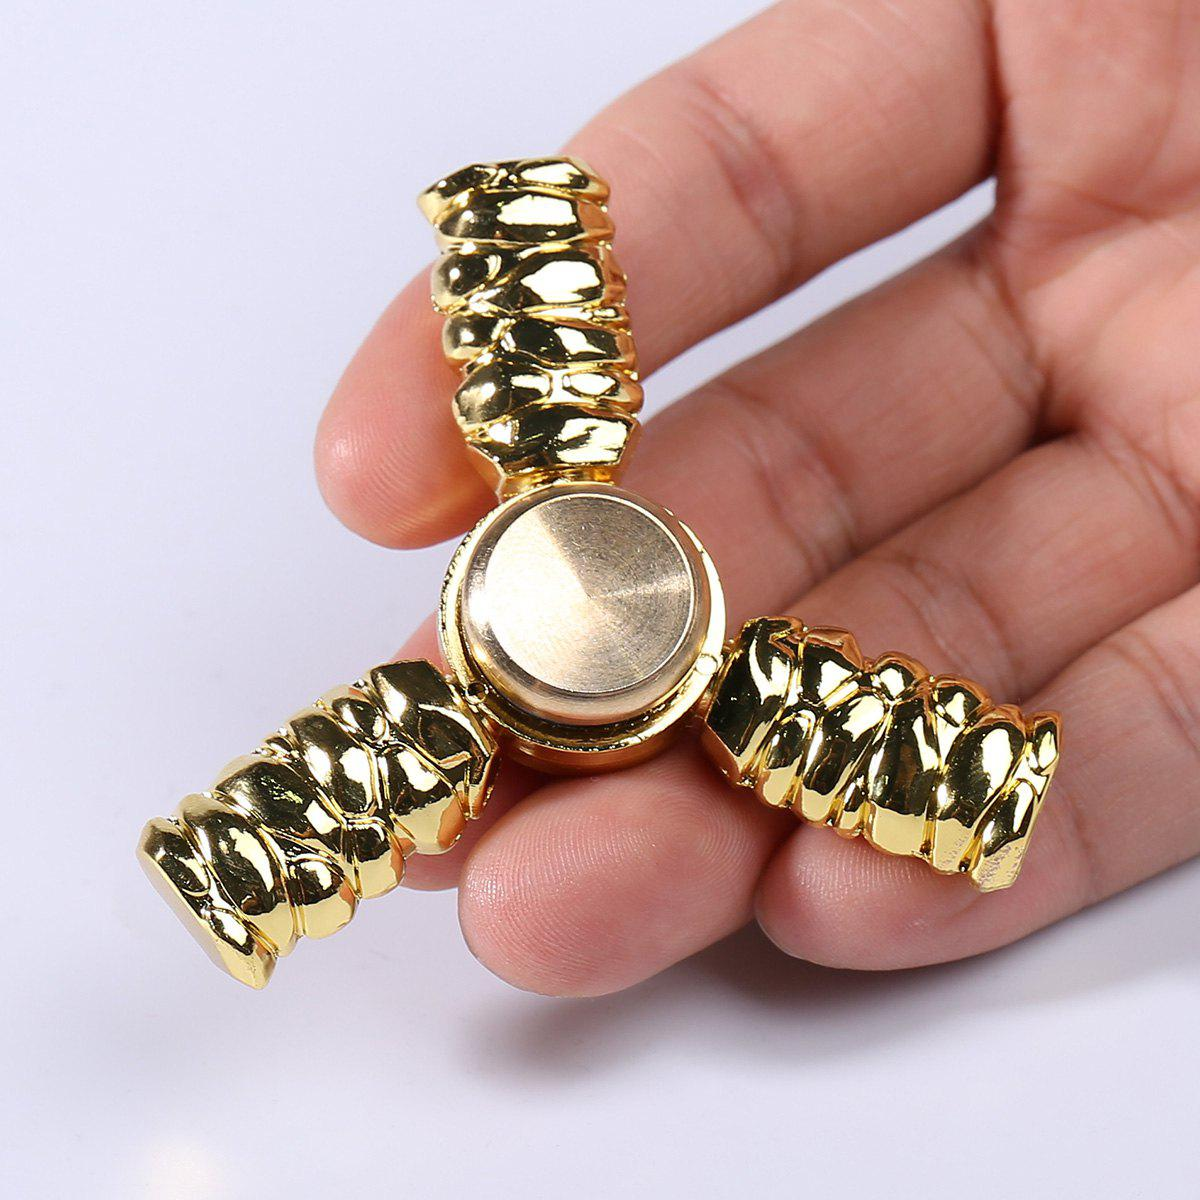 2018 Three-blade Stress Relief Toy Fidget Hand Spinner ...